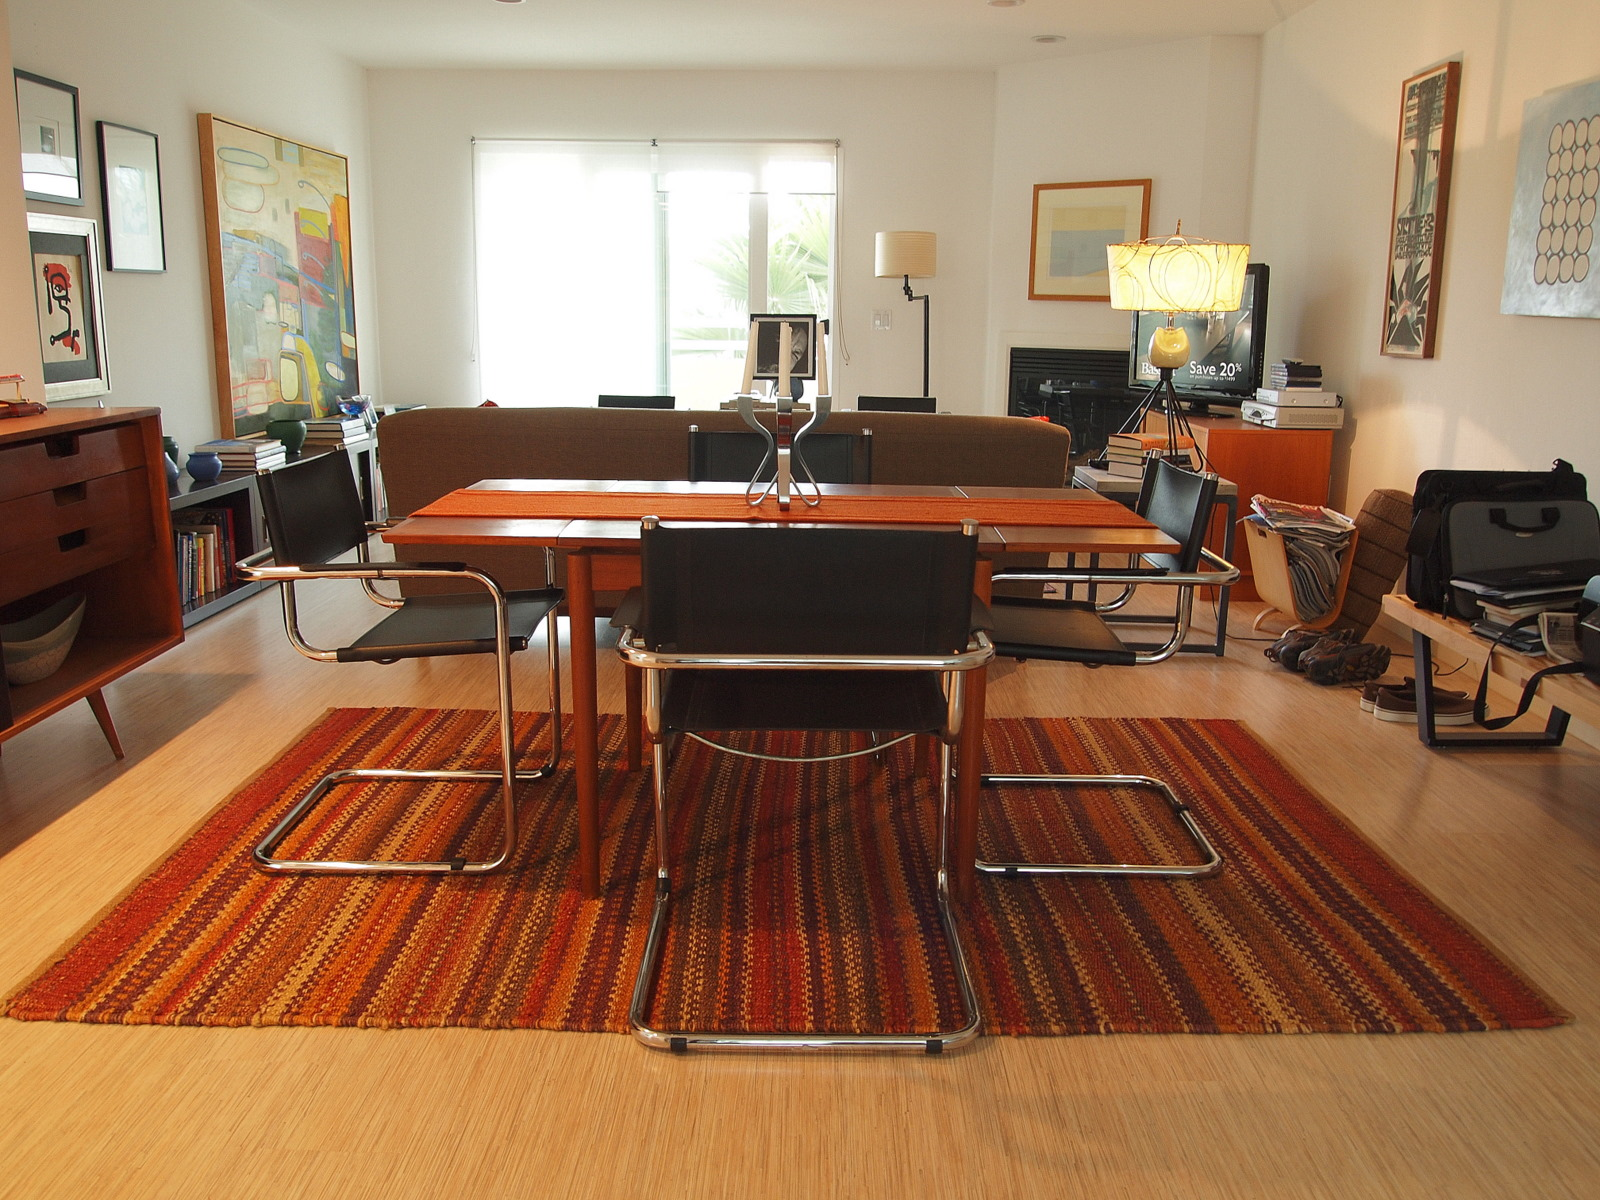 modern dining room with orange striped rug